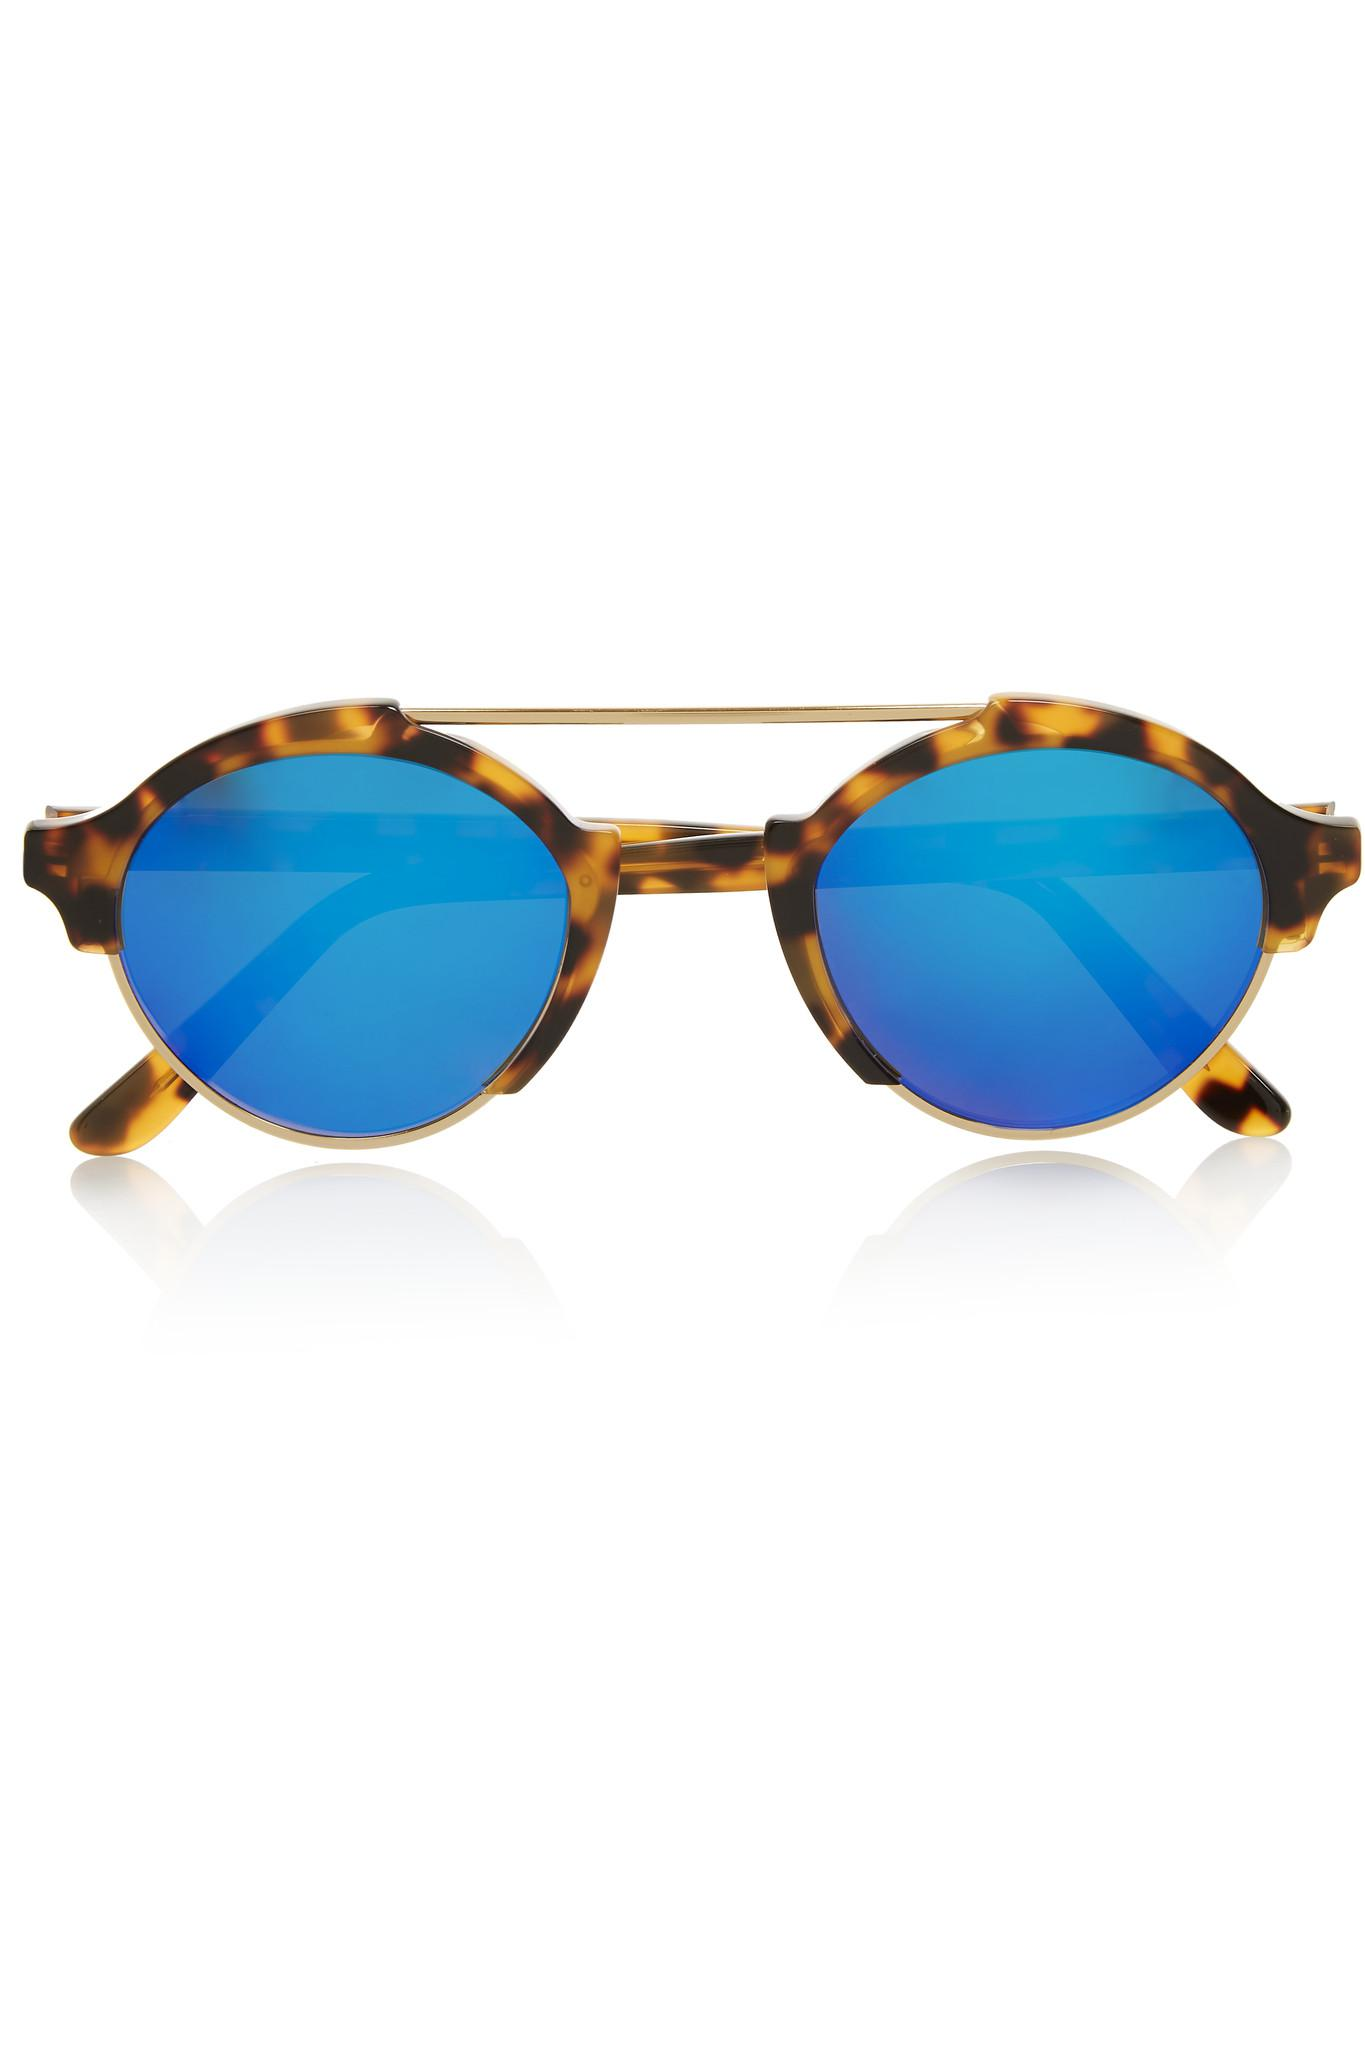 ccb751331ebd4 Lyst - Illesteva Milan Iv Round-frame Gold-tone And Acetate Mirrored ...